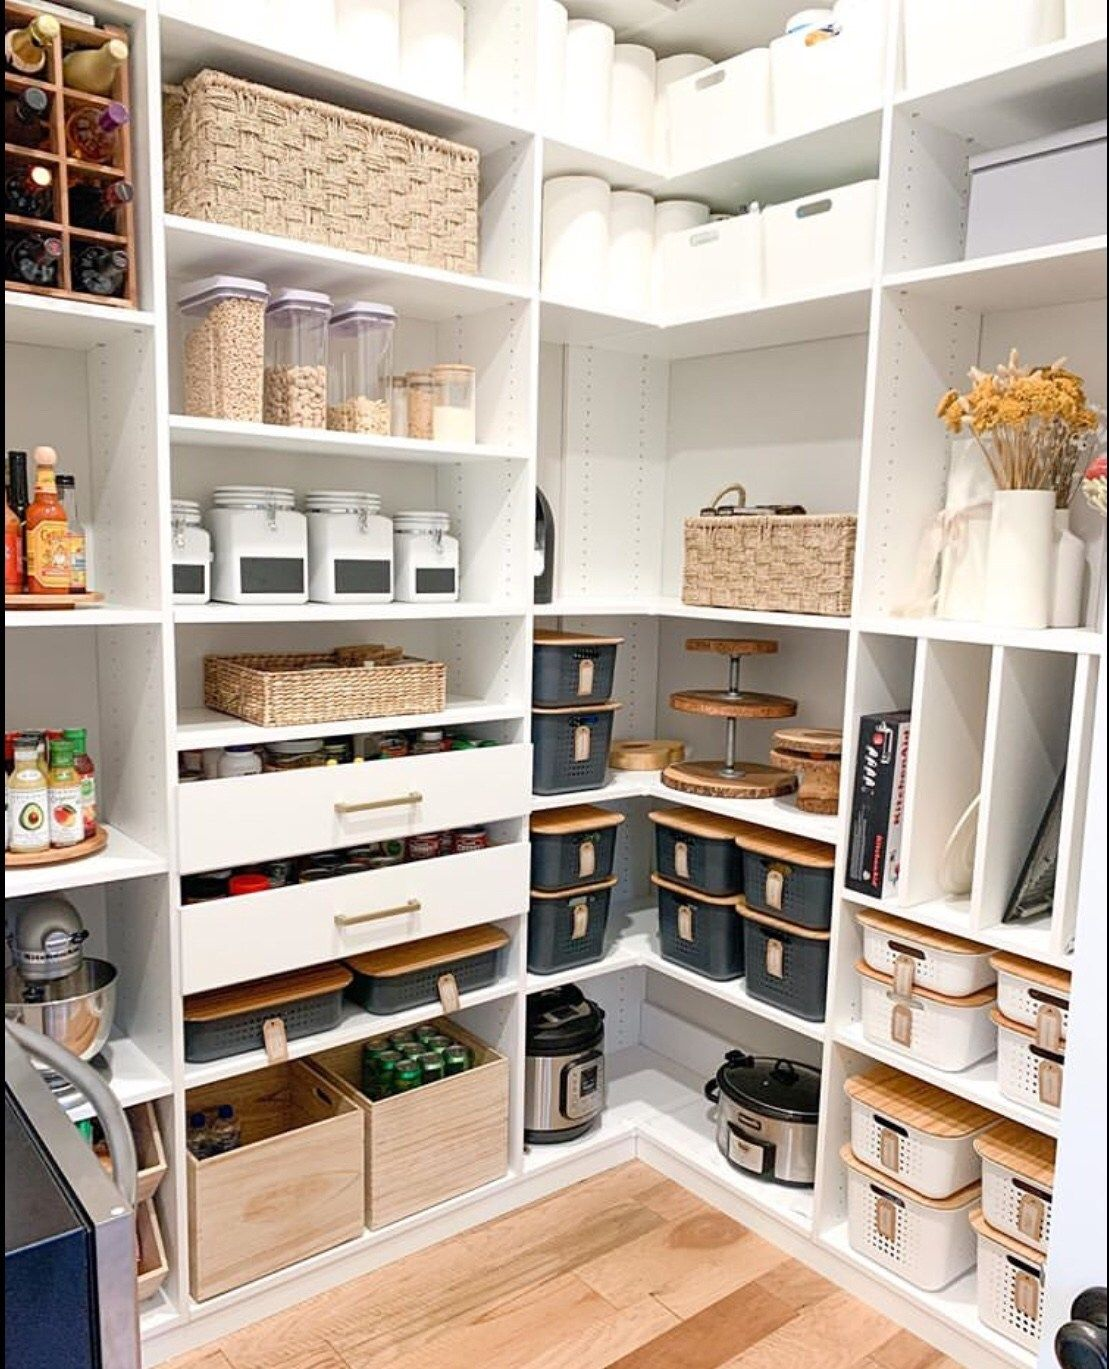 50+ Clever Pantry Organization Ideas - The Wonder